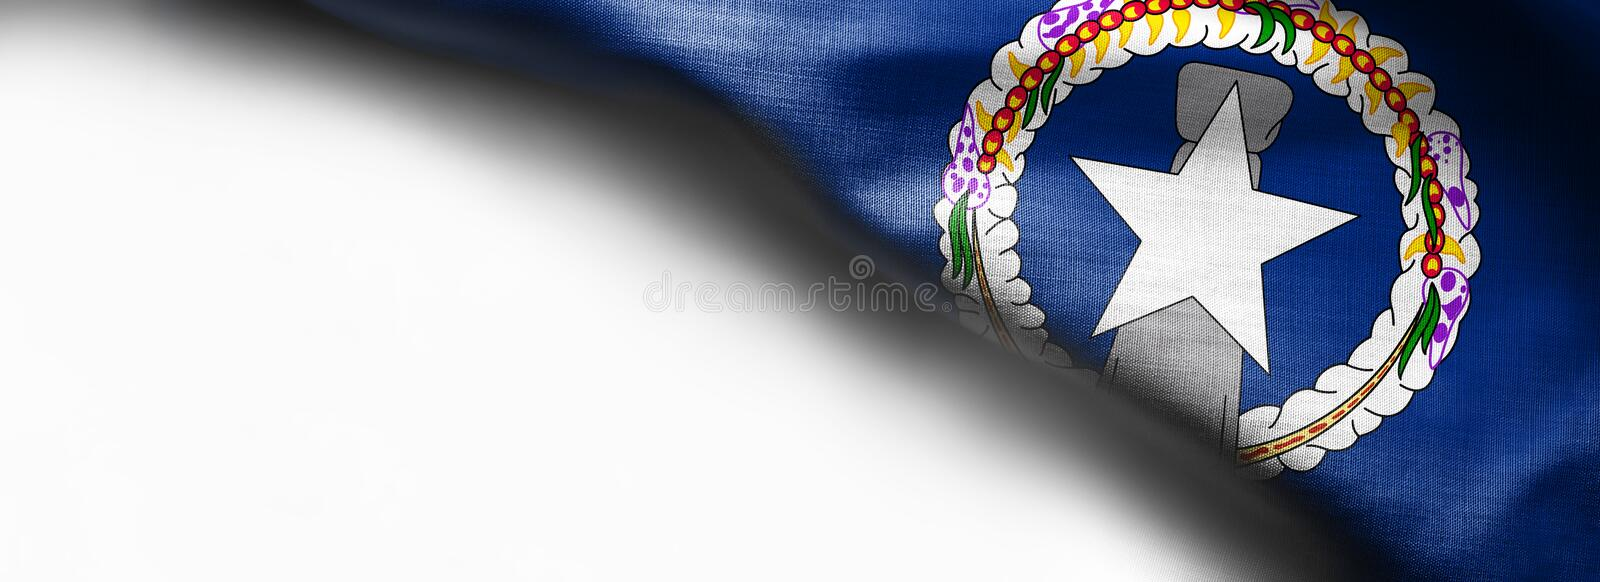 Realistic flag of Northern Mariana Islands. Fabric stock photo